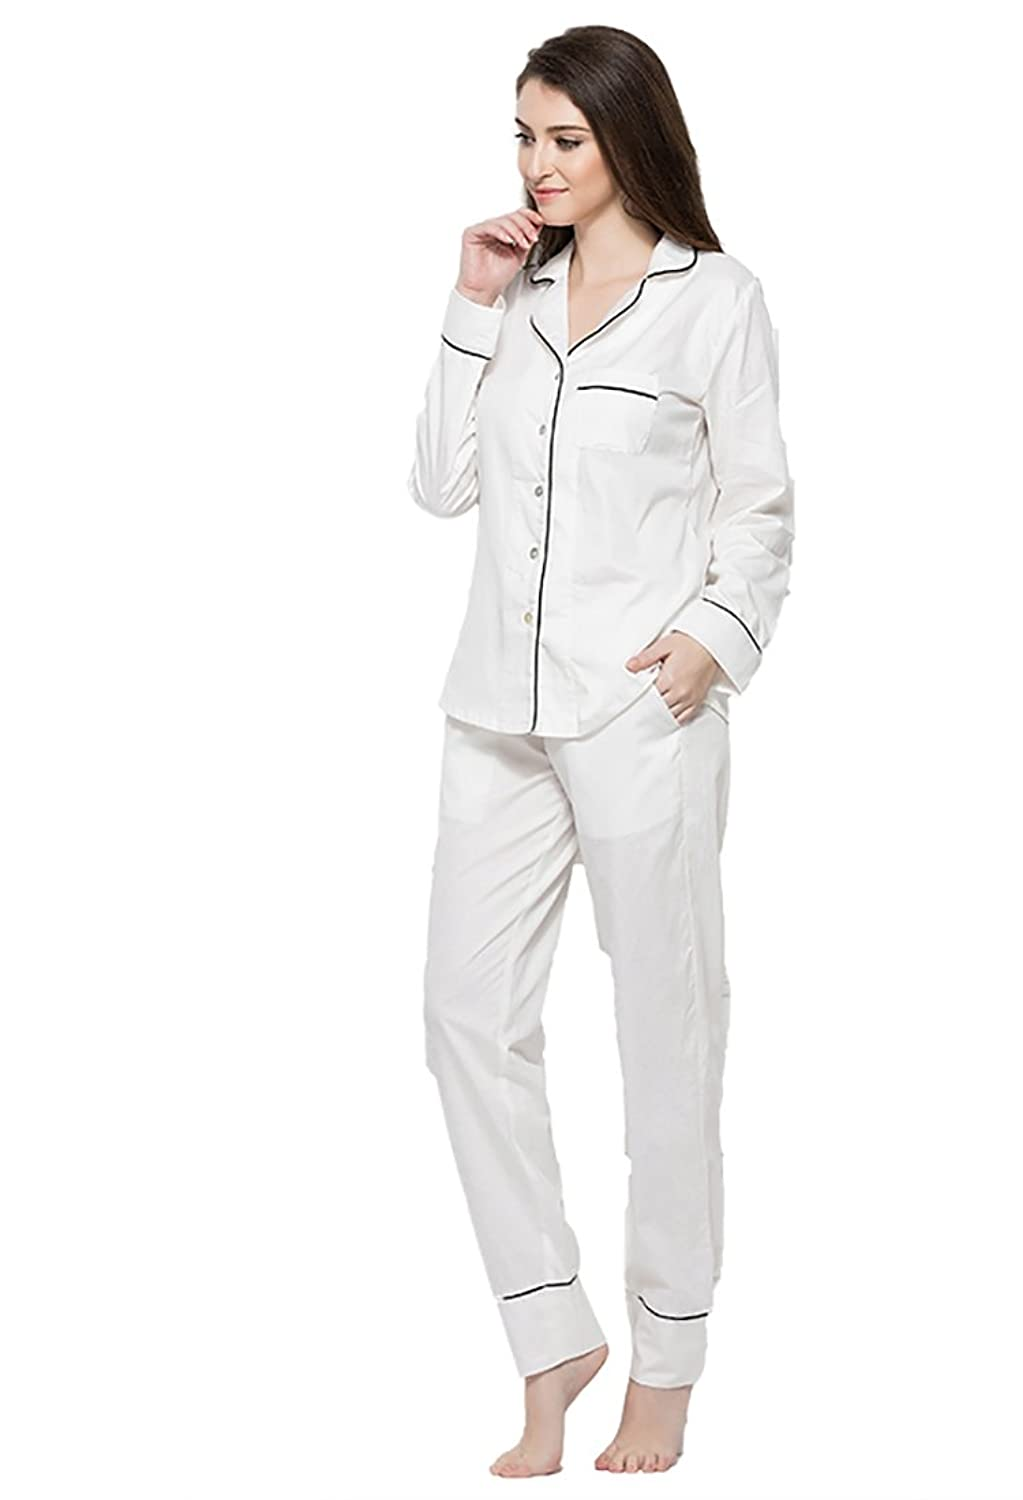 d84da36155 Top3: ROMOCEN Pajamas for Women,Luxury Womens Pajamas,100% Cotton Women's Pajamas  Button Down Pajama Piping Sets Sleepwear